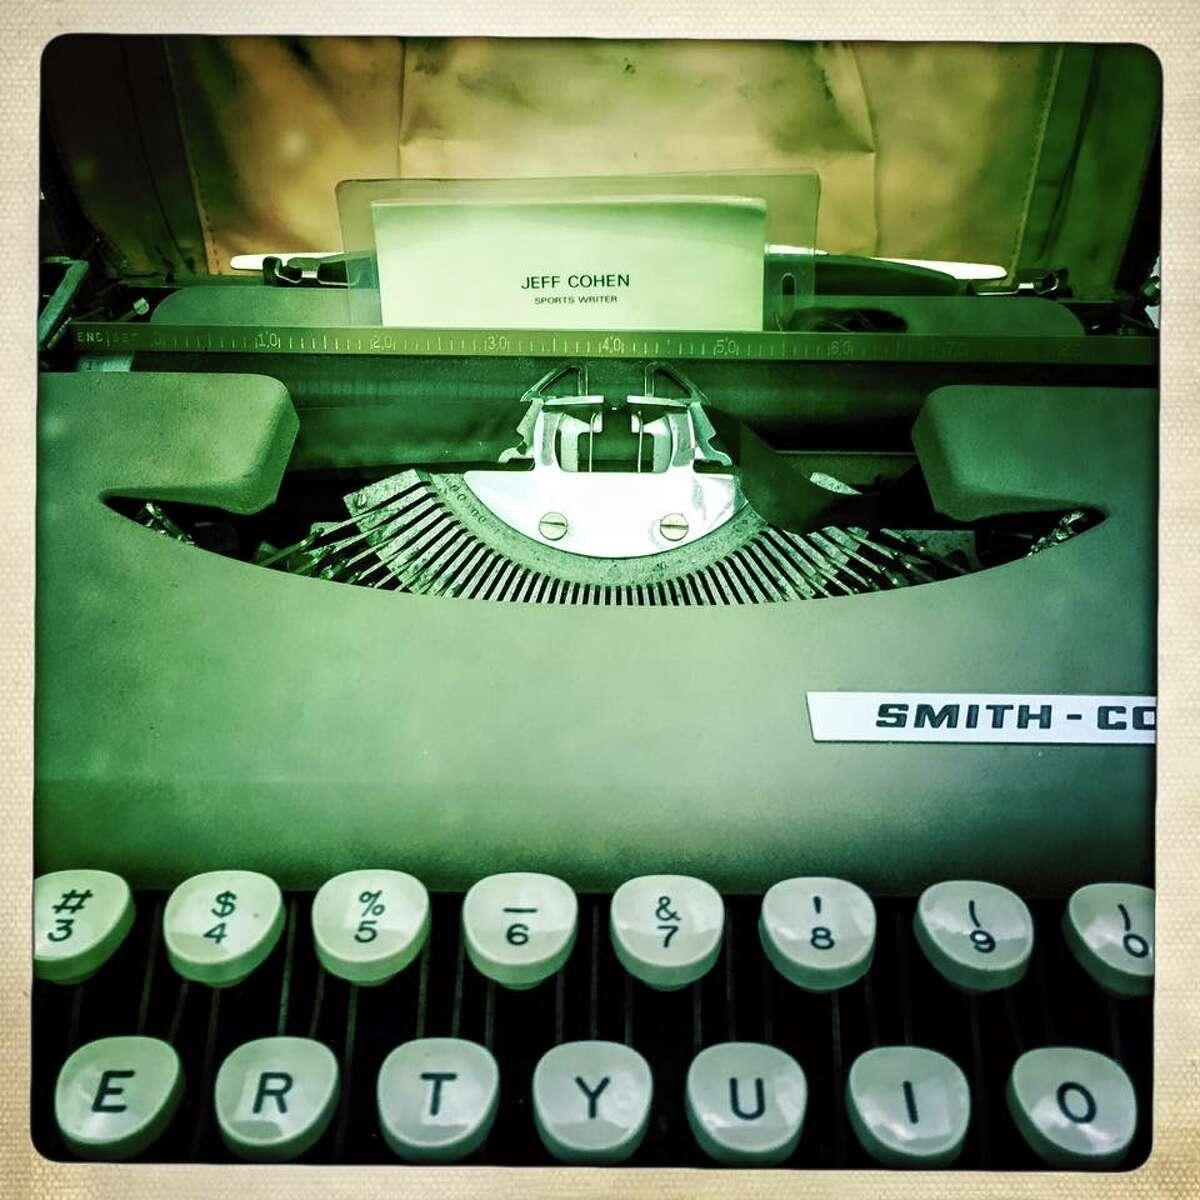 Jeff Cohen's typewriter that he used on assignments, back in the day!